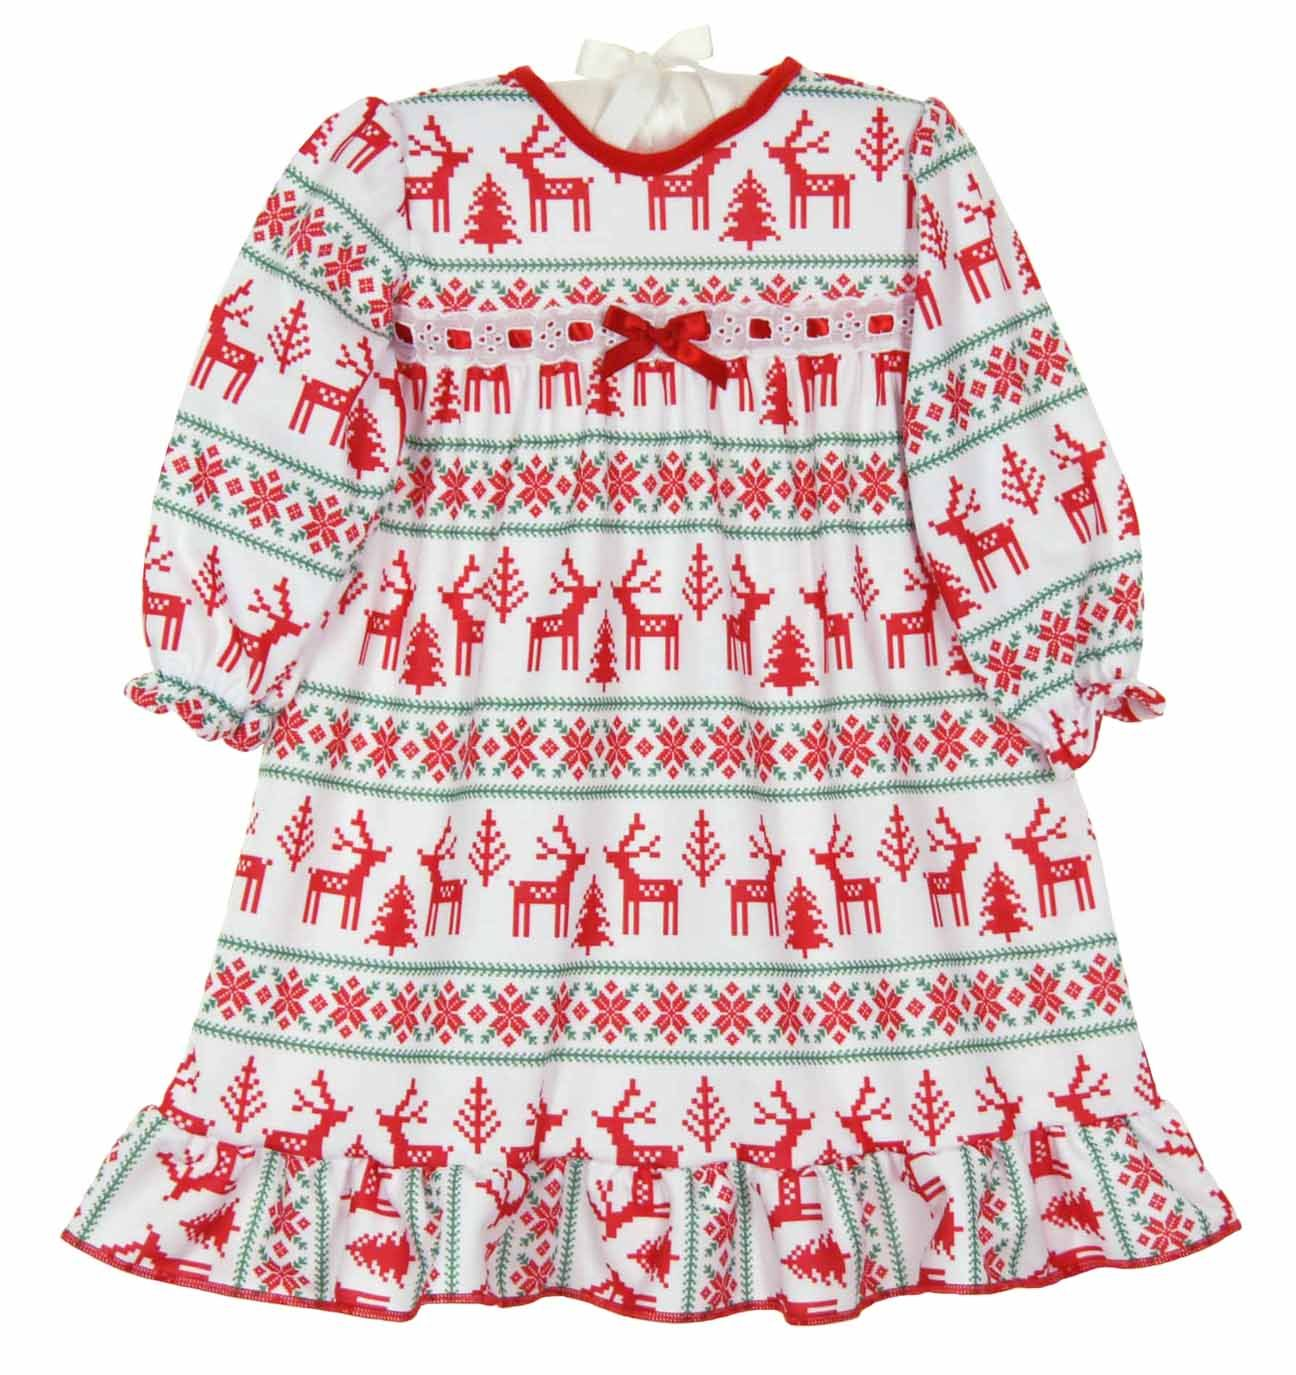 NEW Fair Isle Print Nightgown for Babies 1f6c76759